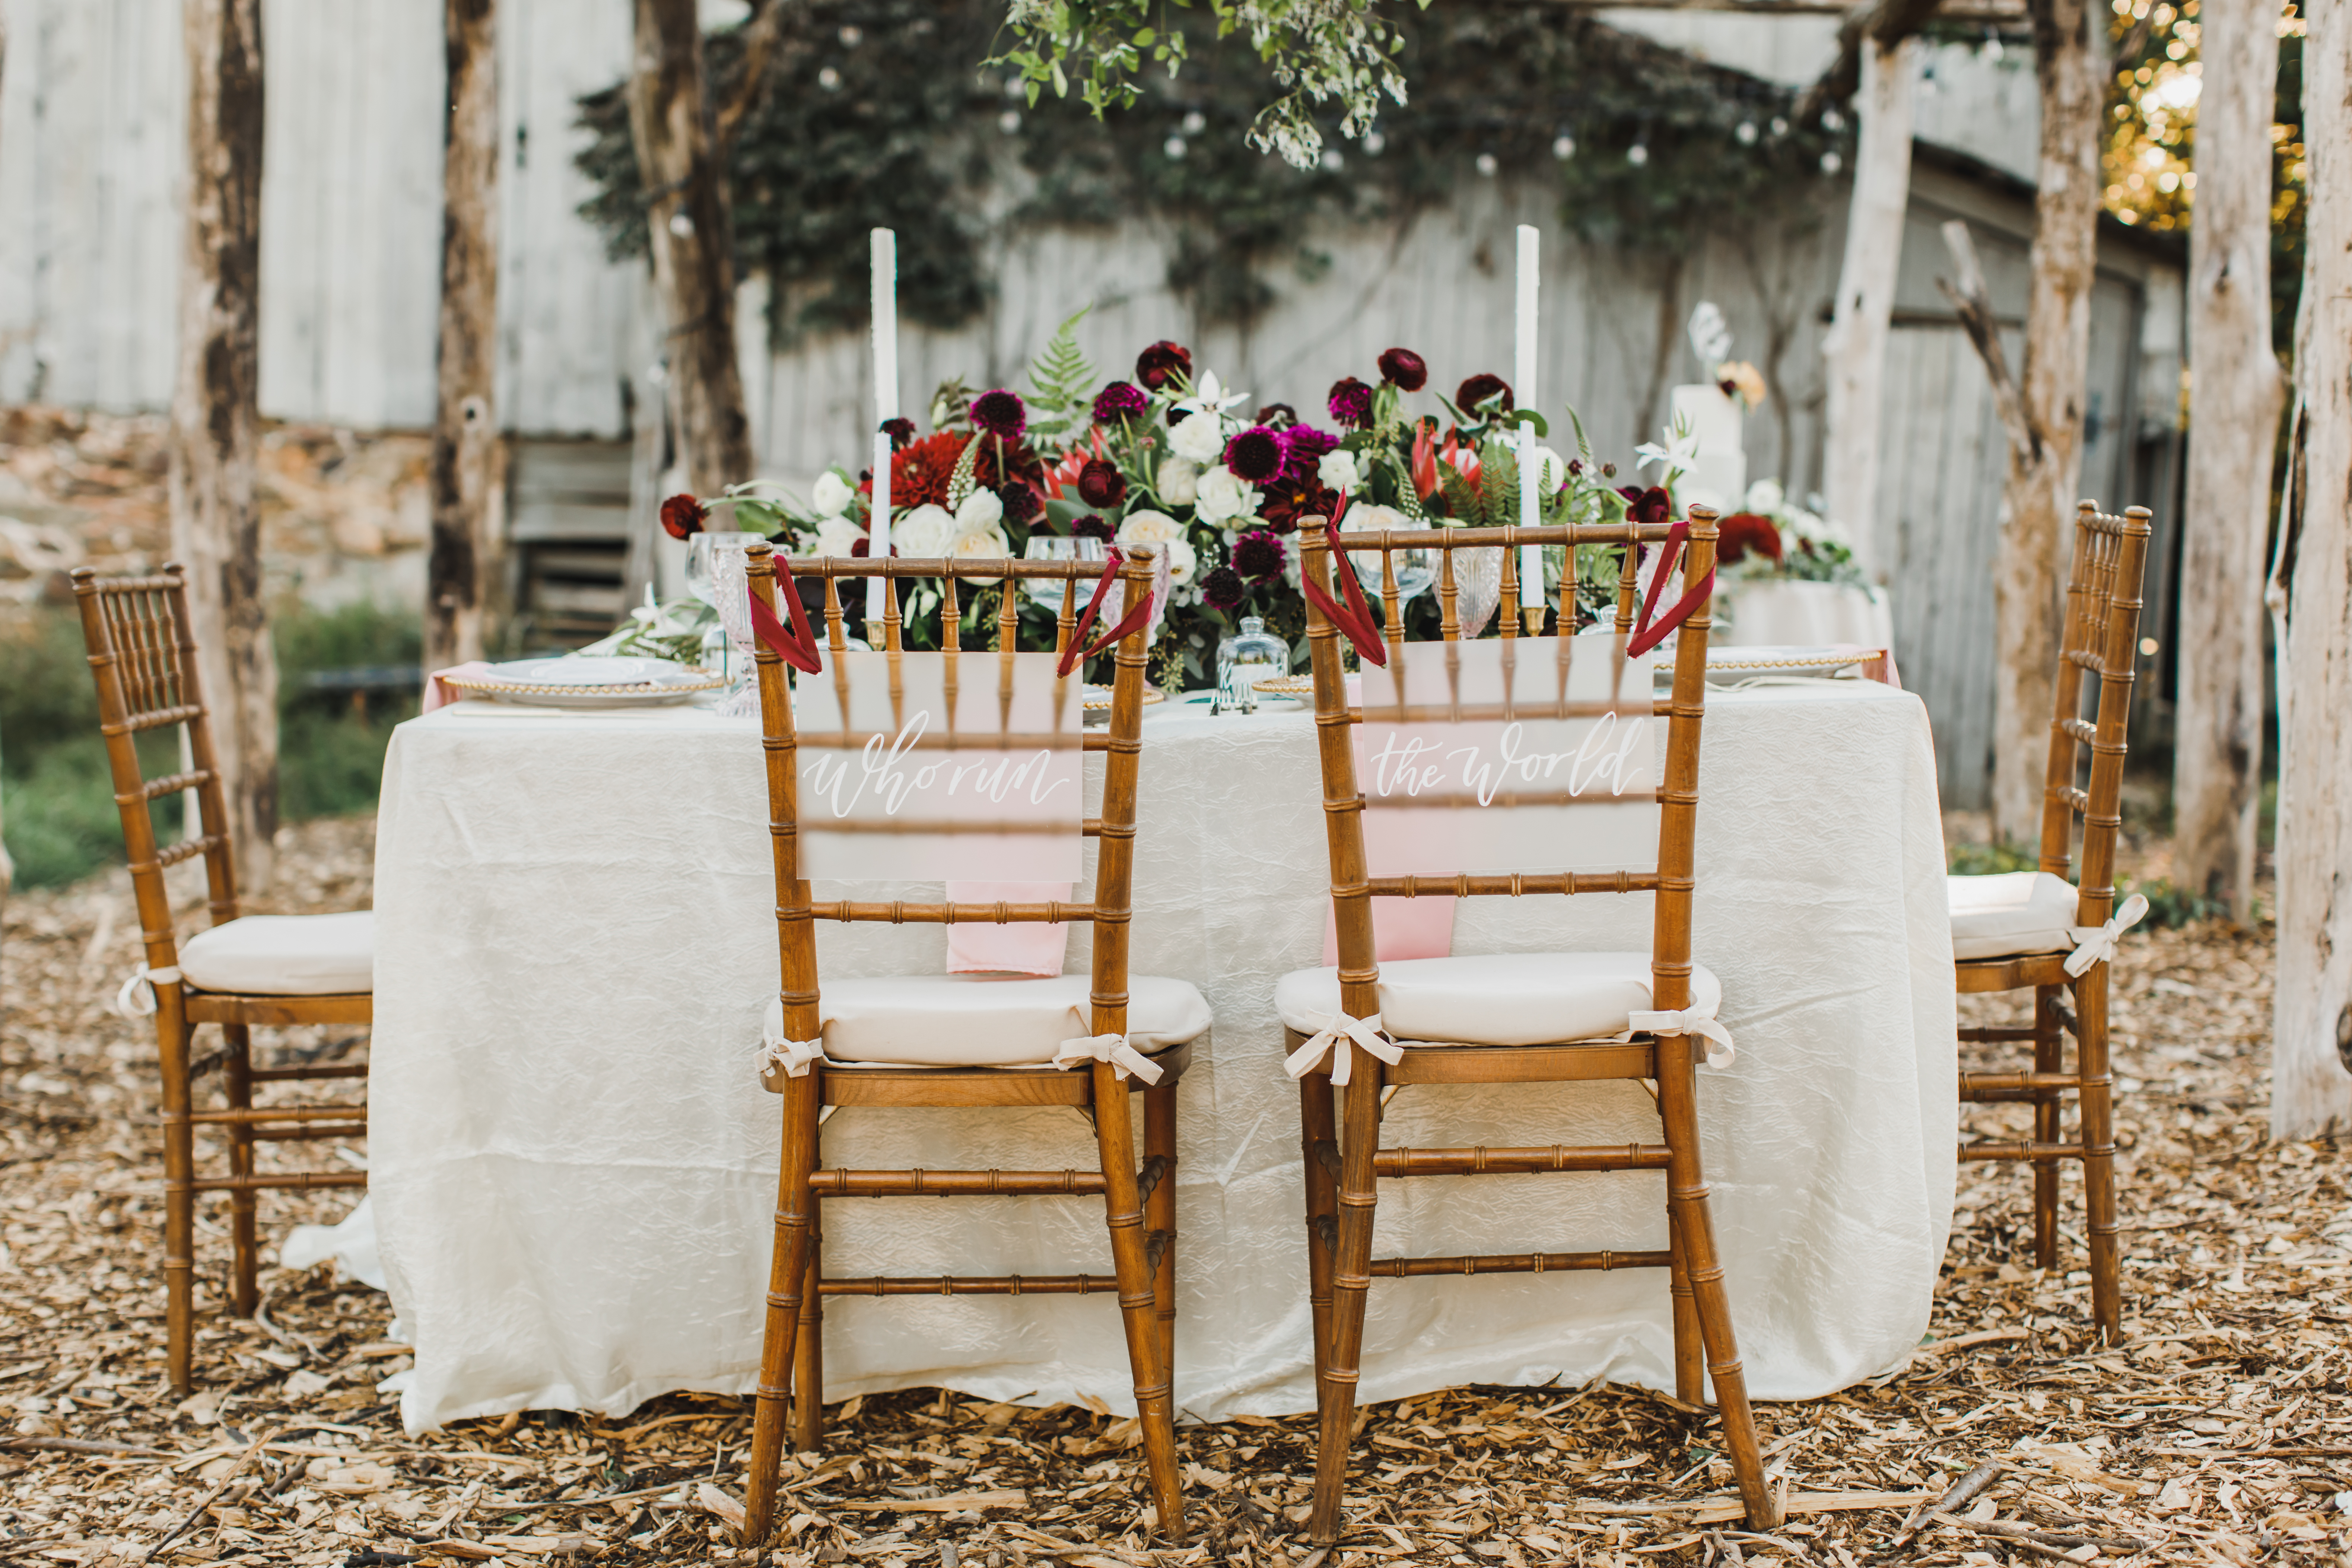 Sweetheart table chairs with signs that say 'who run the world'